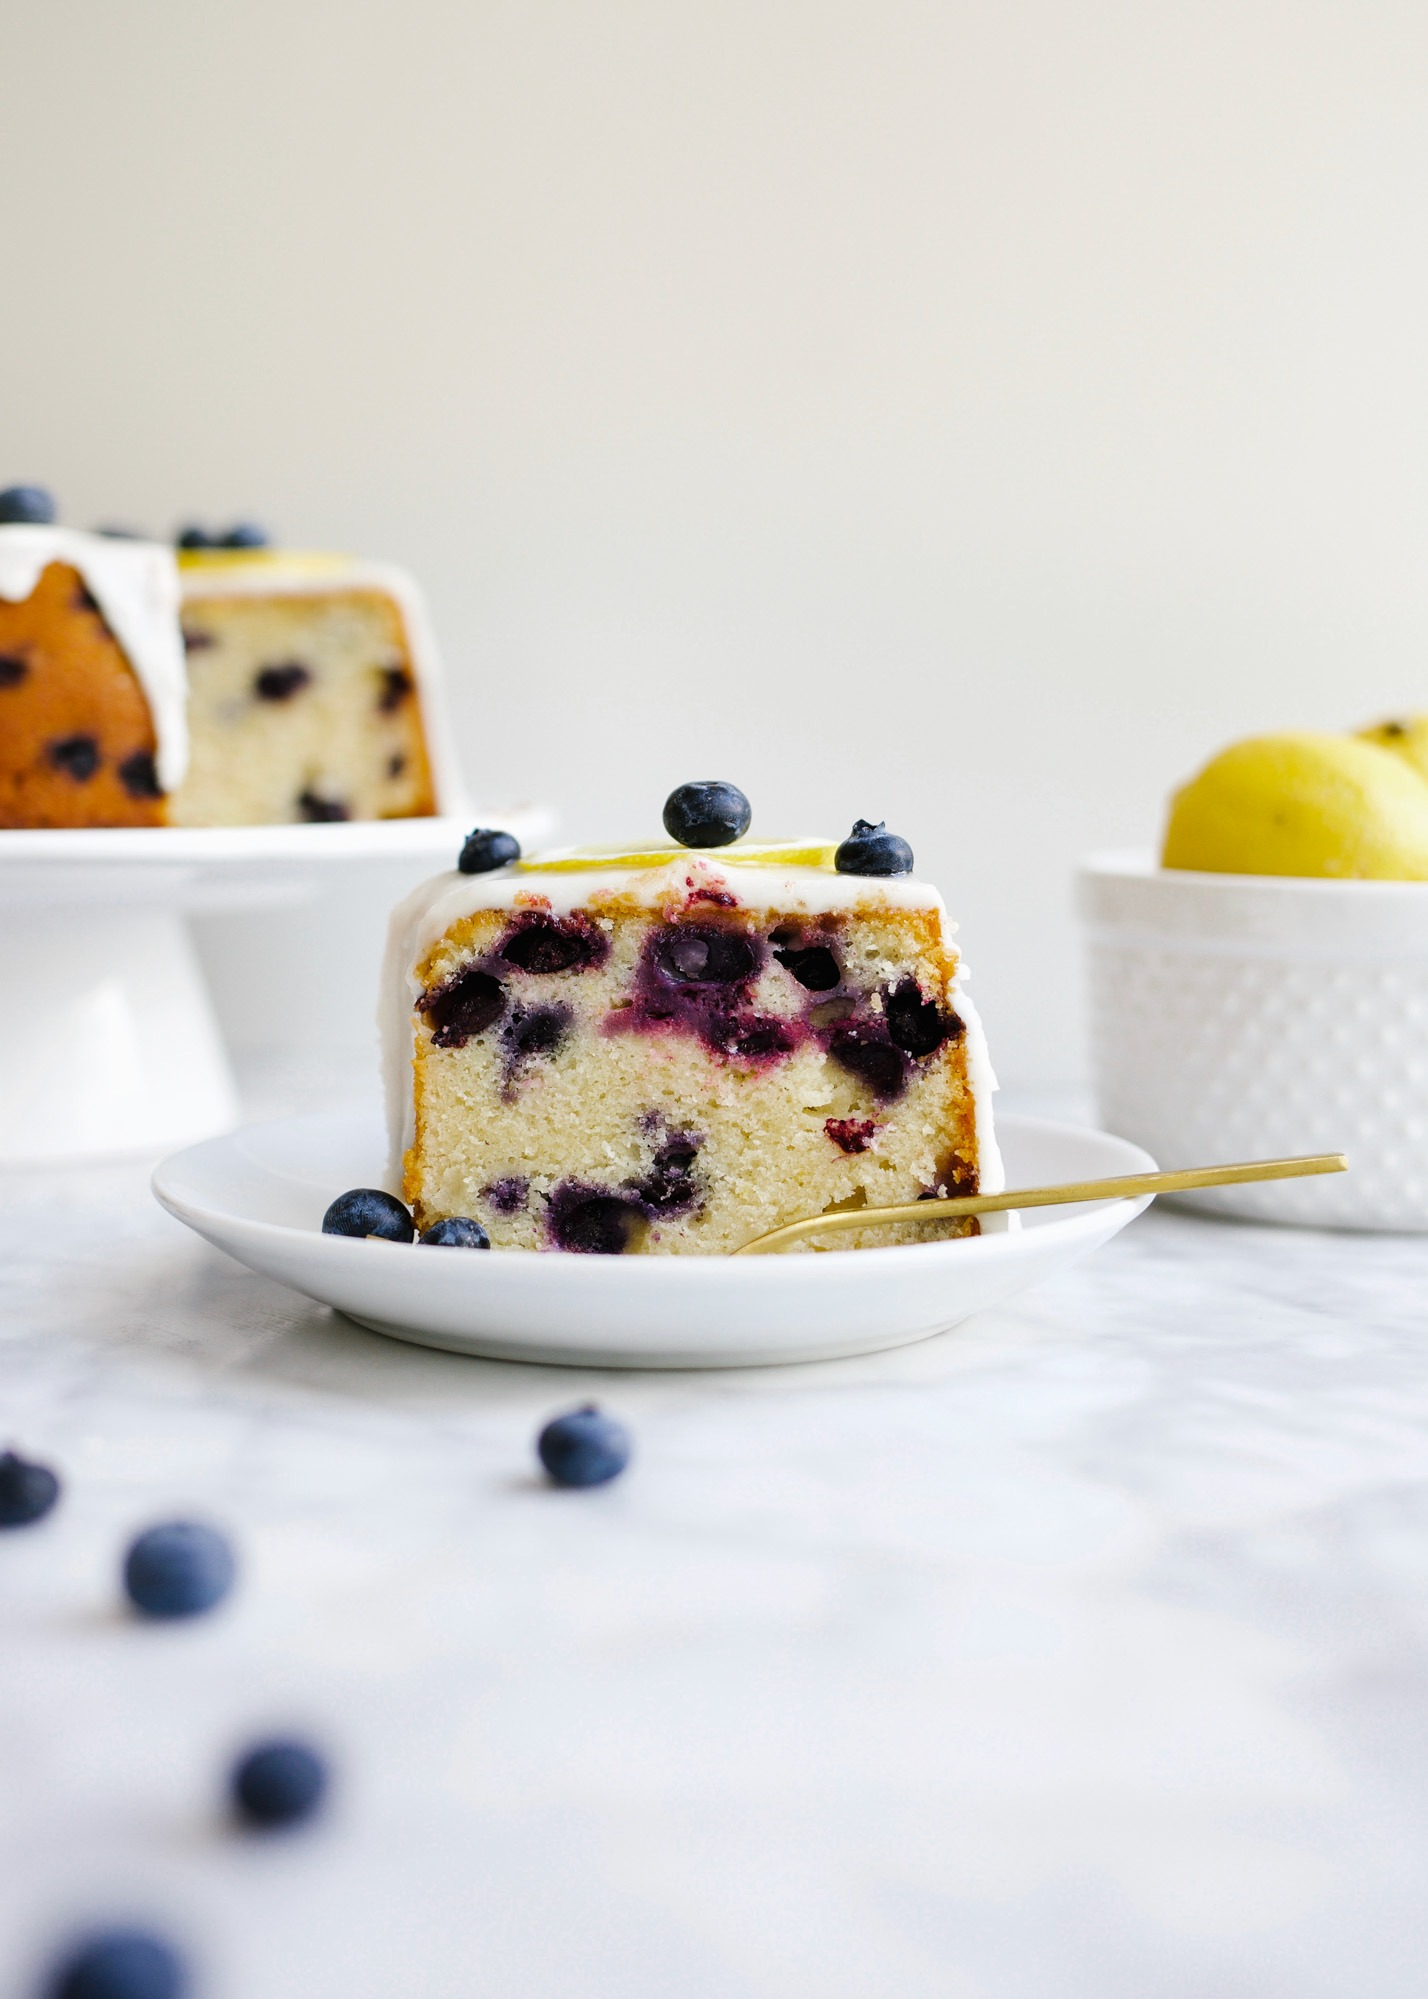 Blueberry Lemon Pound Cake by Wood and Spoon blog. This is a simple buttery pound cake brightened up with the fresh taste of lemon juice and zest and summer blueberries. The cake is iced with a lemon glaze and serves well as a summery breakfast or dessert. Learn how simple it is to make this Southern pound cake on thewoodandspoon.com